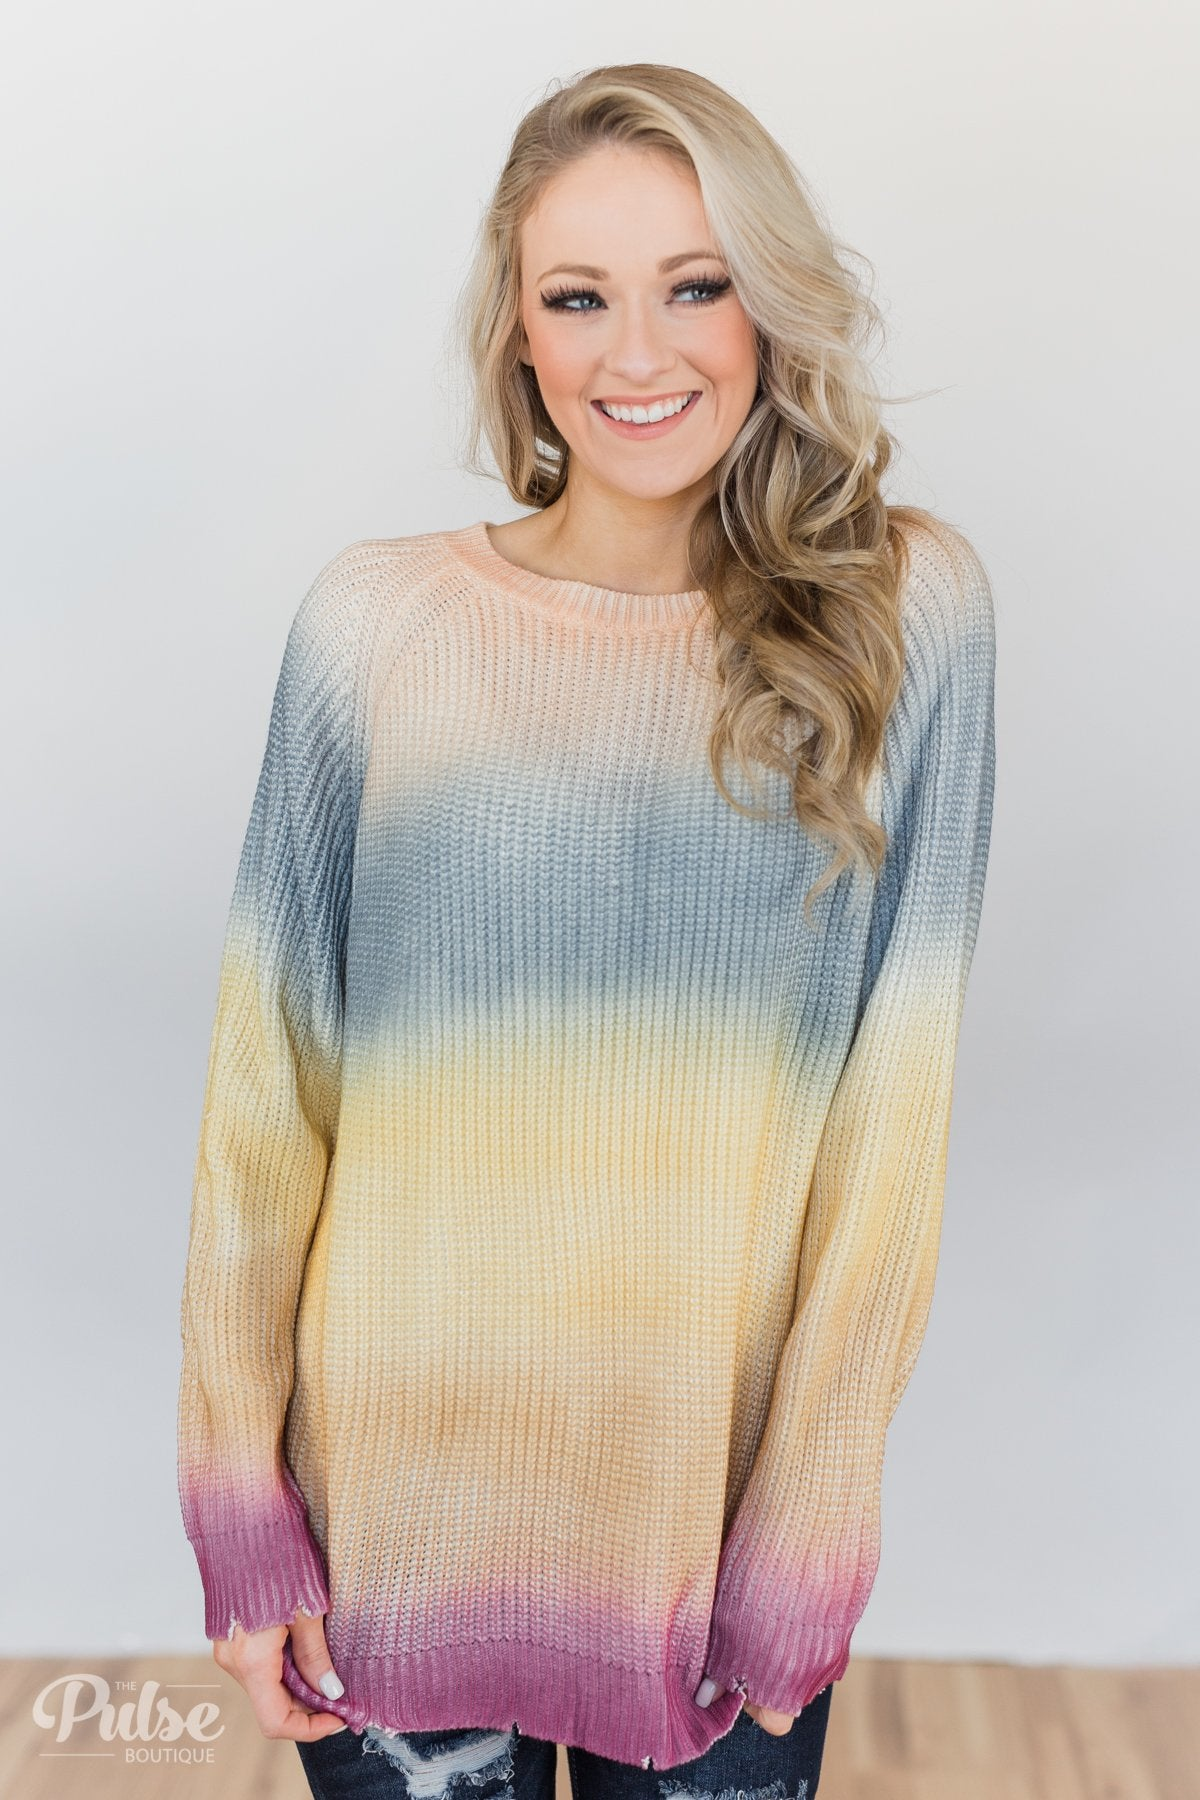 Knitted Ombre Sweater- Blue, Yellow, Purple